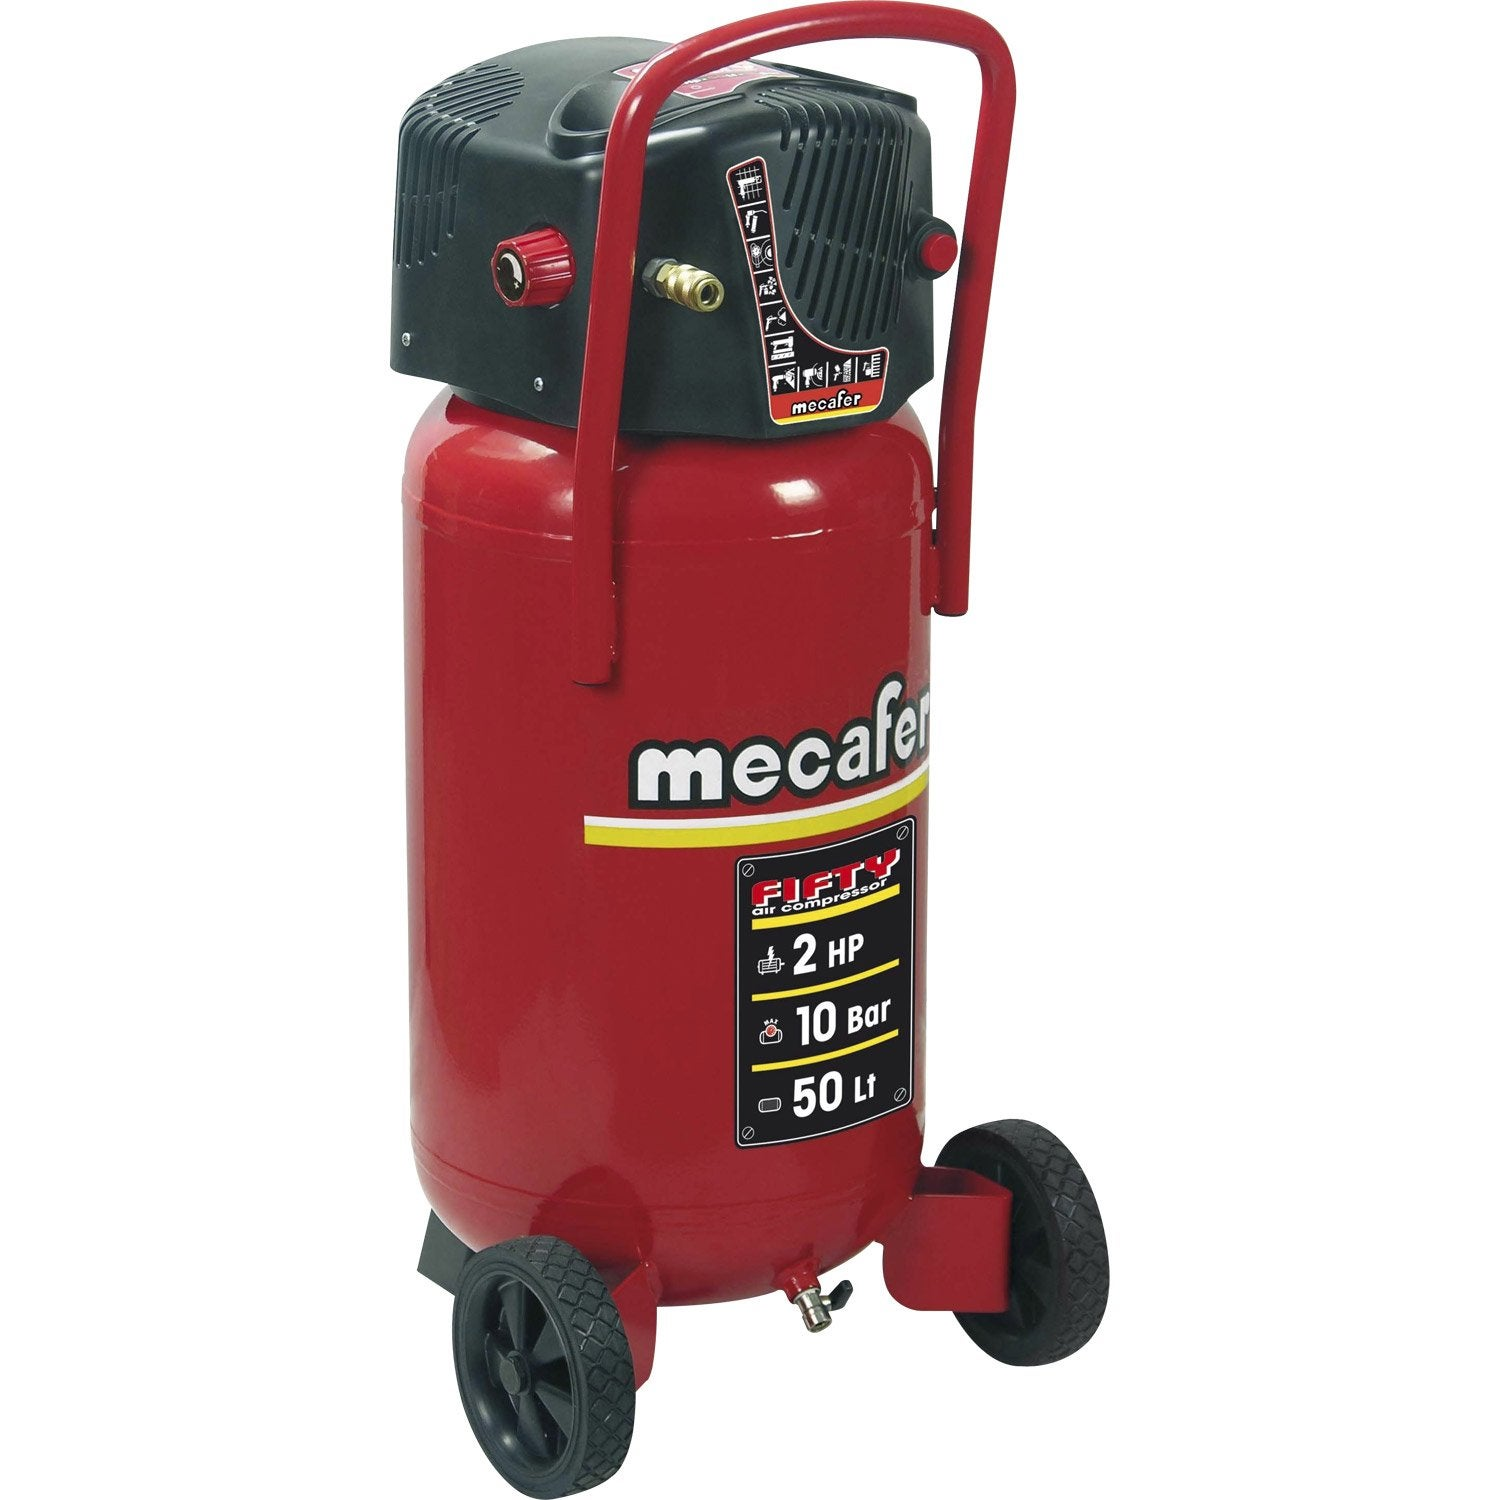 Compresseur vertical de loisirs mecafer fifty 50l 2cv leroy merlin - Compresseur d air leroy merlin ...